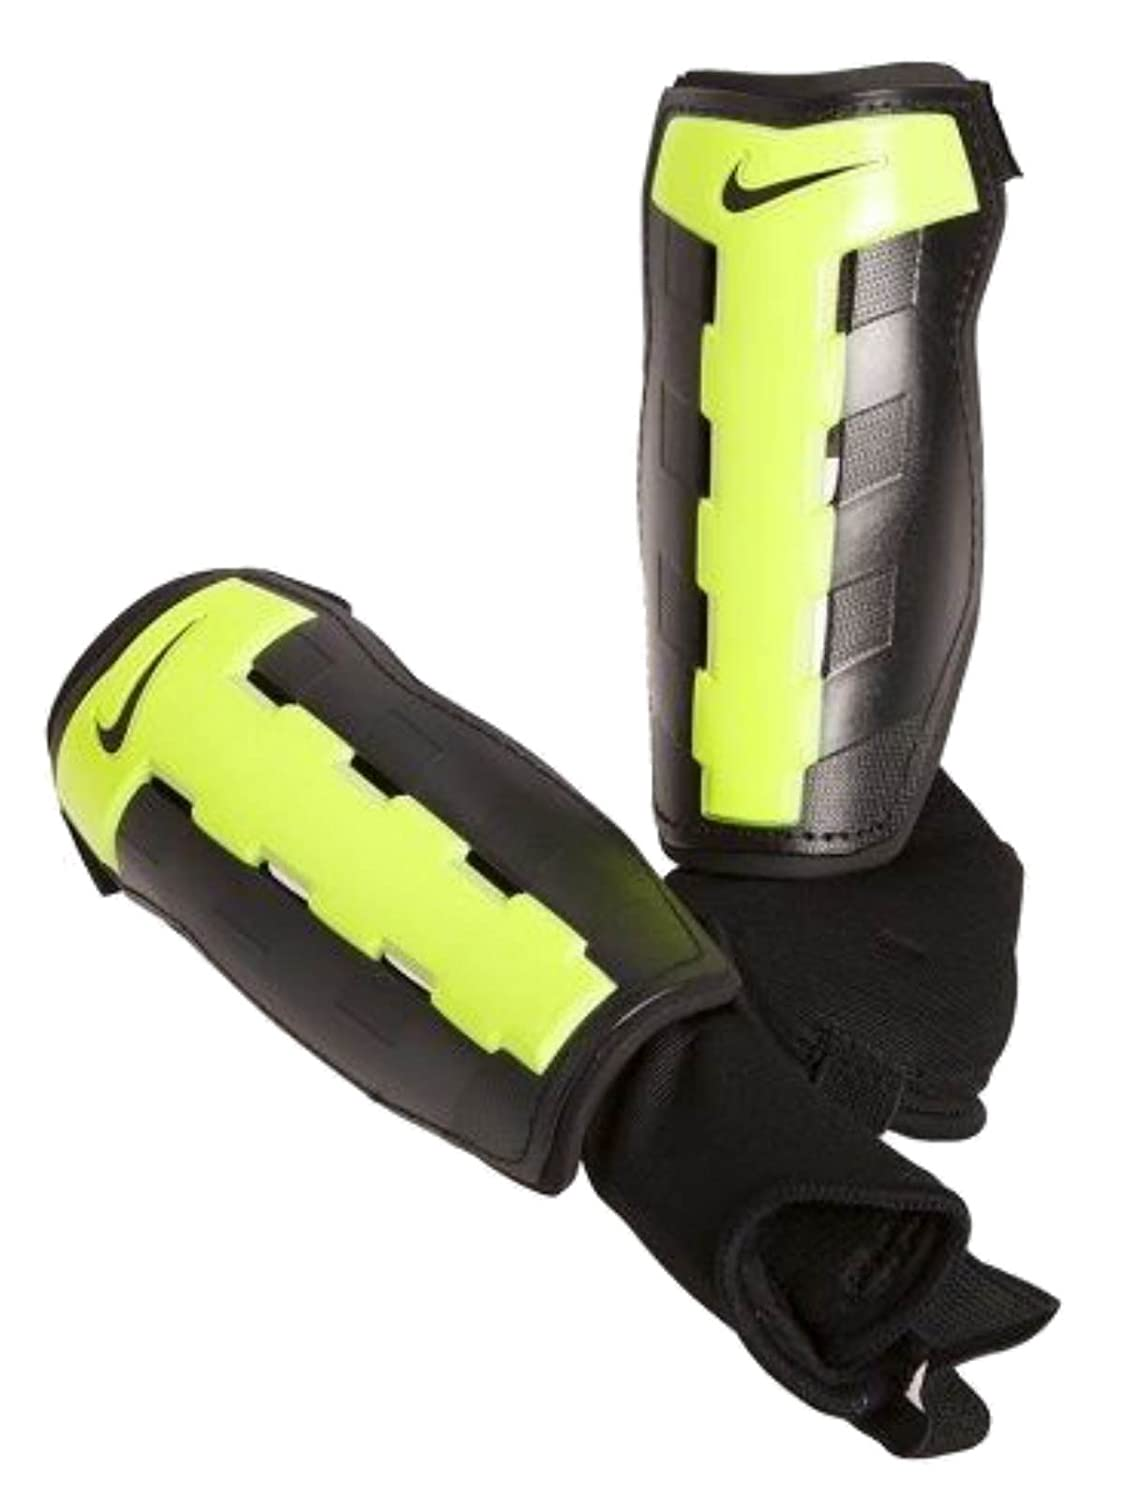 Nike Charge Shin Guards (Volt) B0028V39CU Medium Adults|Yellow Yellow Medium Adults